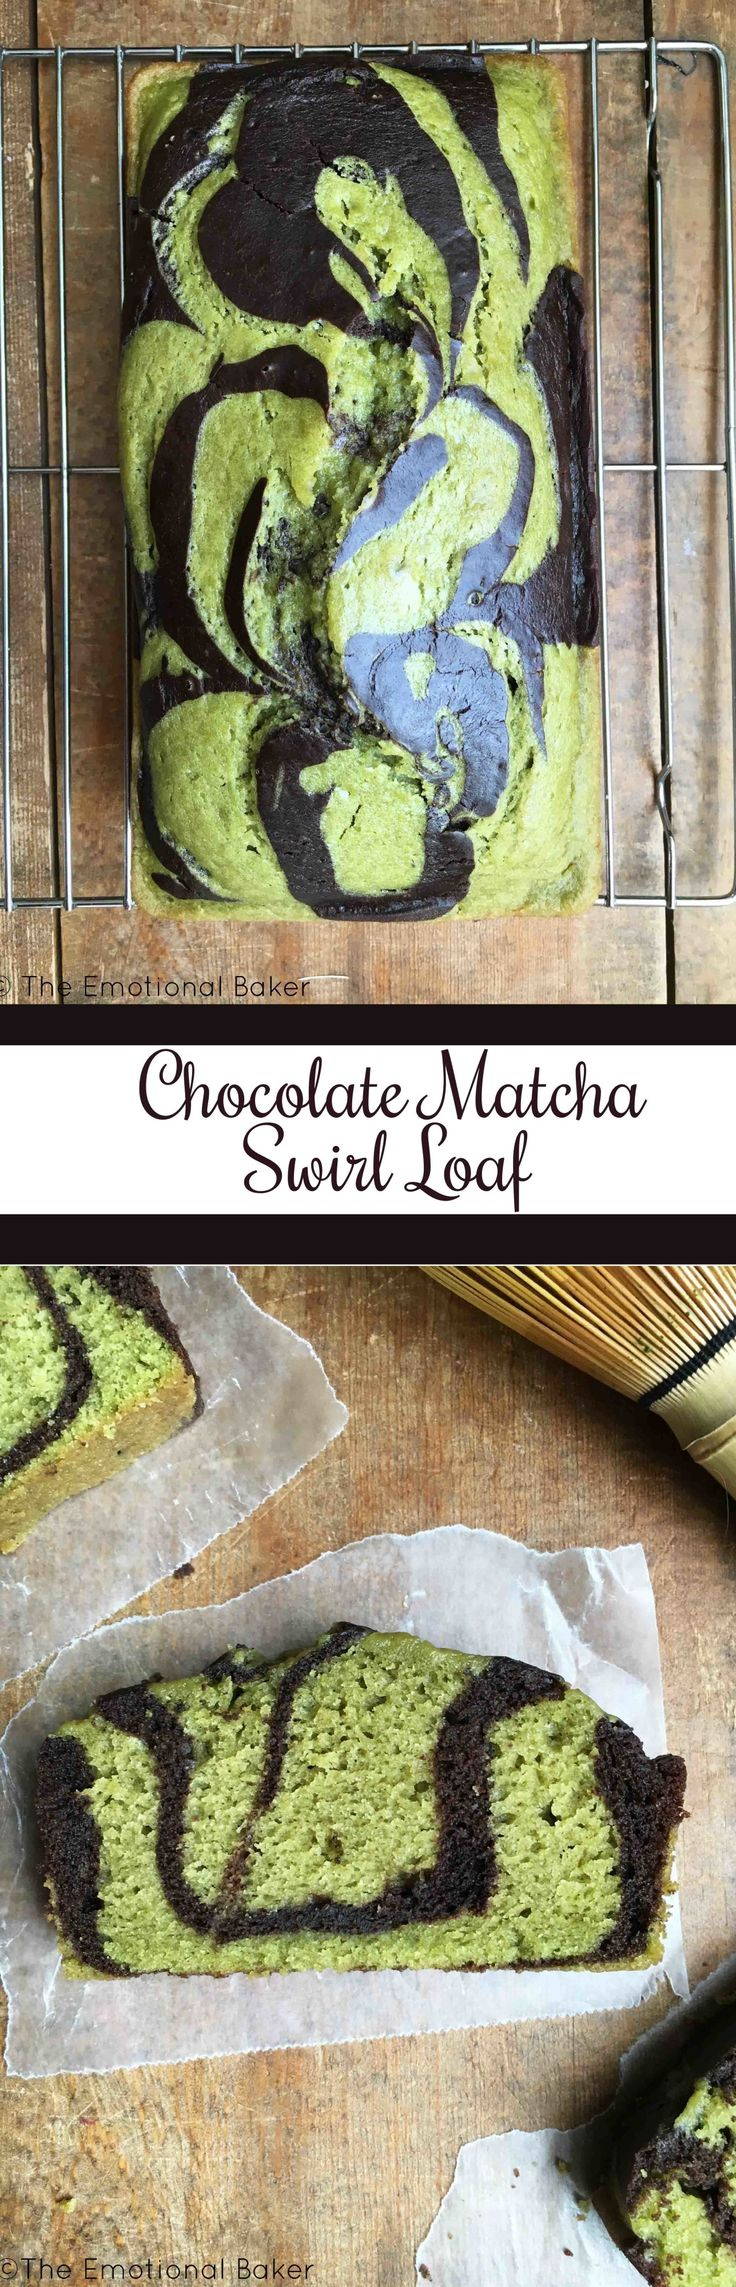 Swirls of matcha, almond and chocolate create the perfect loaf Friday, March 11th, is a big day – it's THE kittens' first birthday. Remember, when I first told you about them? Well, they're still part of the crazy TEB clan. … Continue reading →